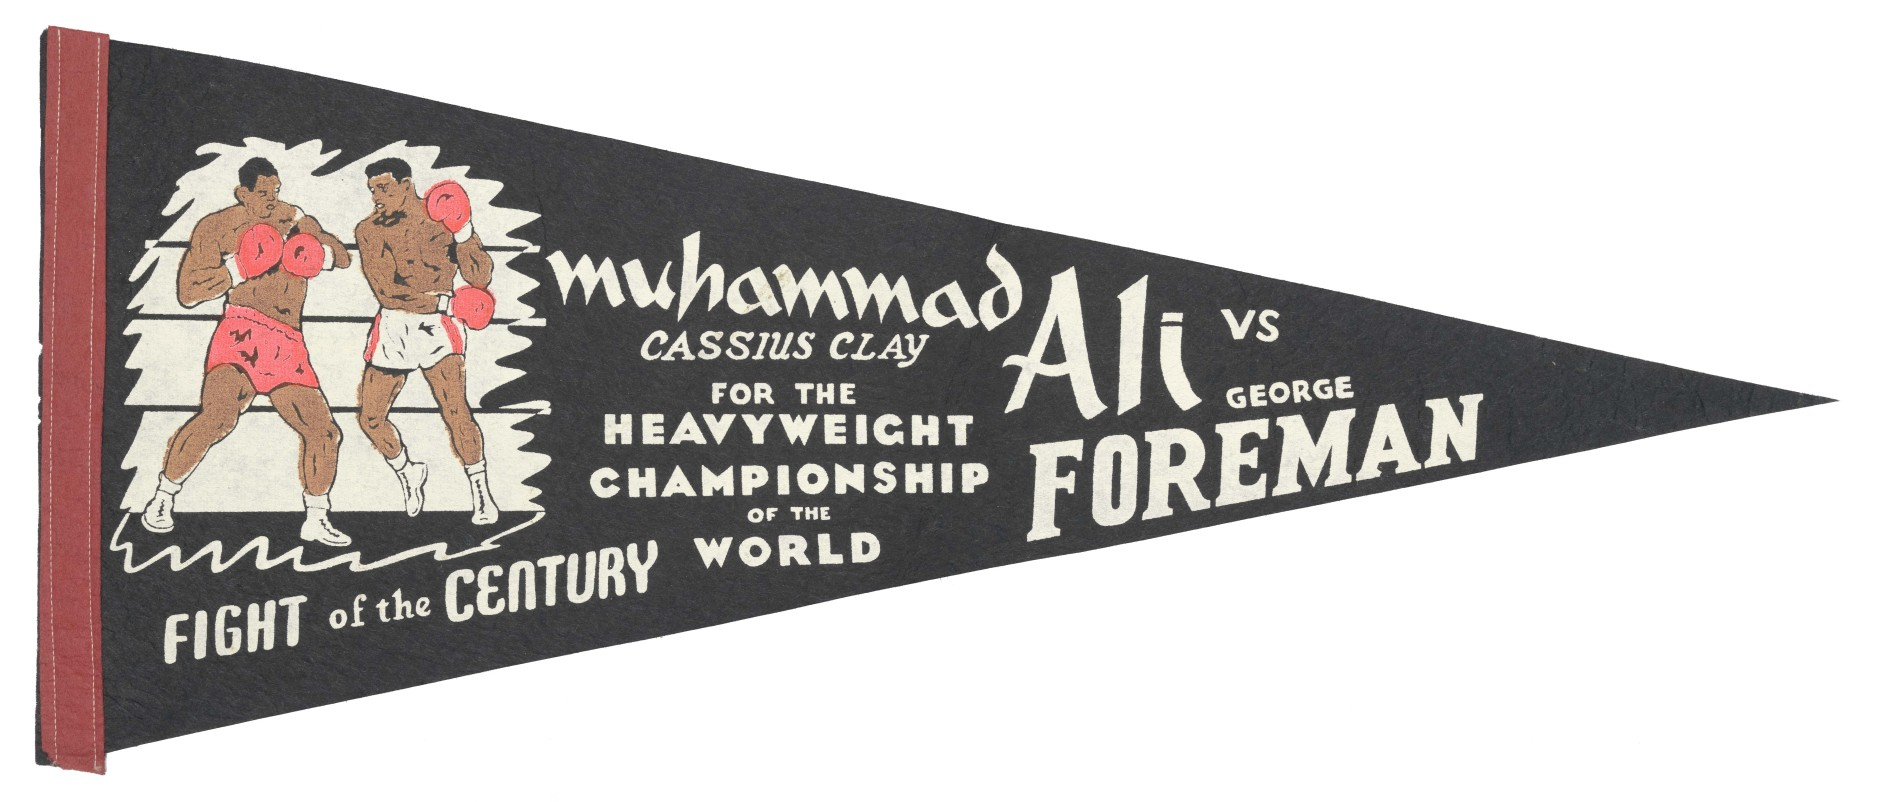 A black felt pennant with white lettering and a graphic of Muhammad Ali and George Foreman fighting in a boxing ring. (Courtesy Collection of the Smithsonian National Museum of African American History and Culture)